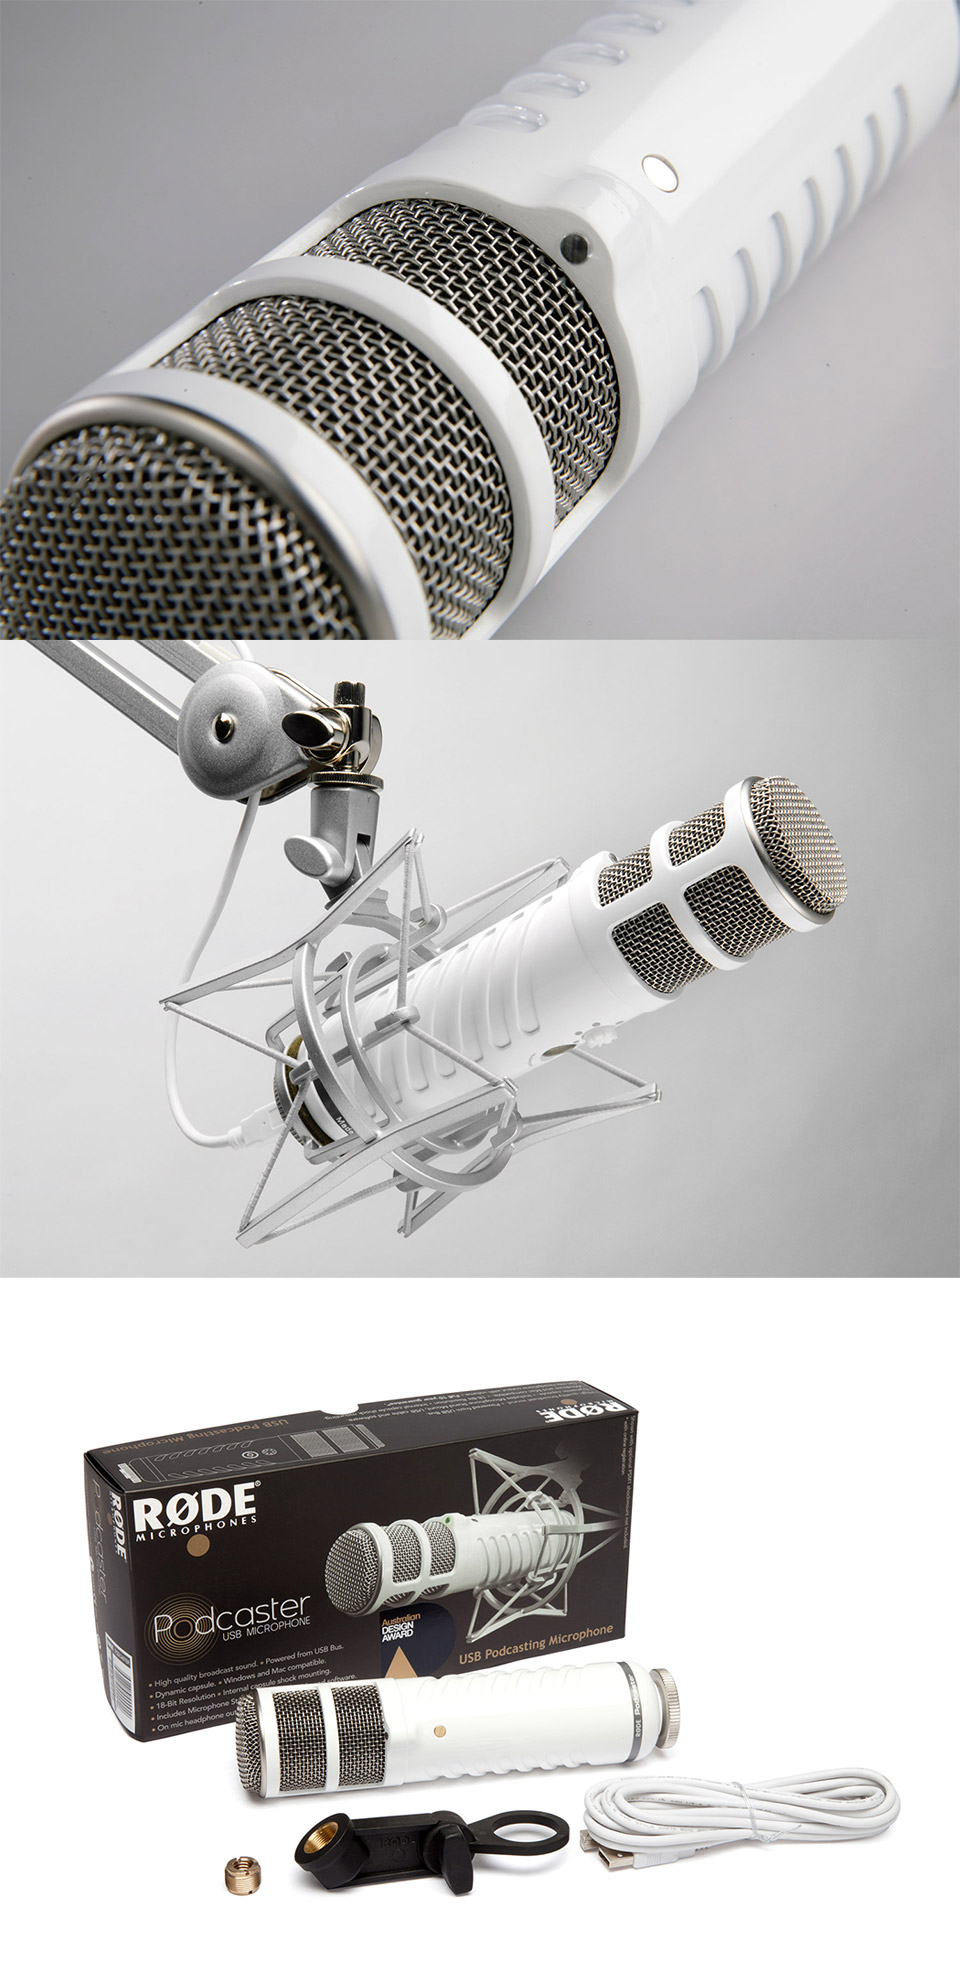 Rode Podcaster USB Broadcast Quality Microphone